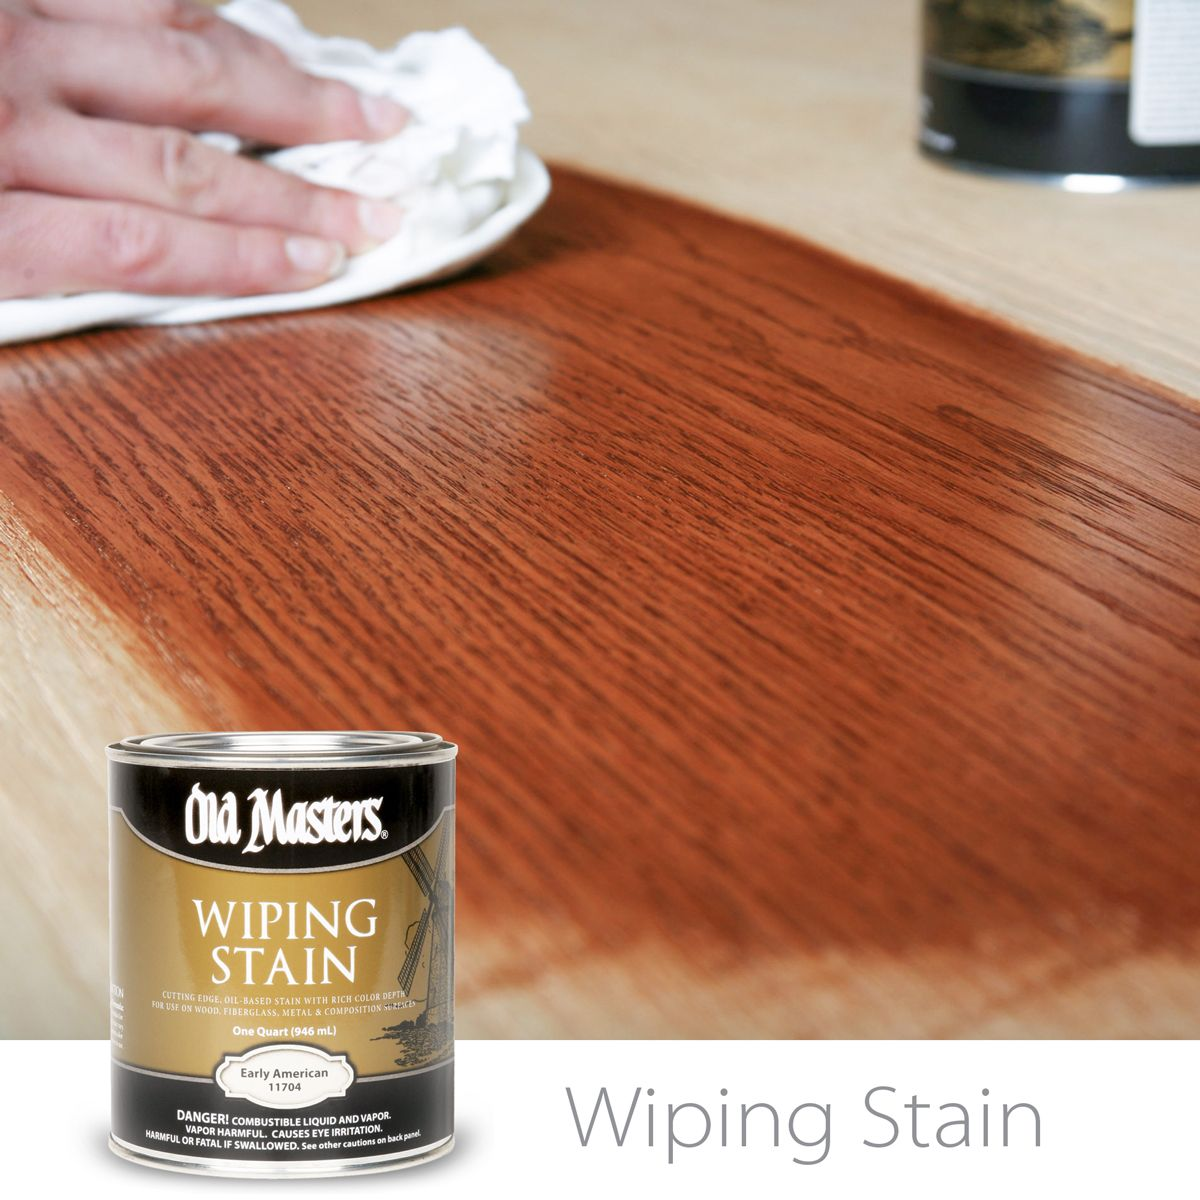 Wiping Stain Old Masters Products In 2019 Oil Based